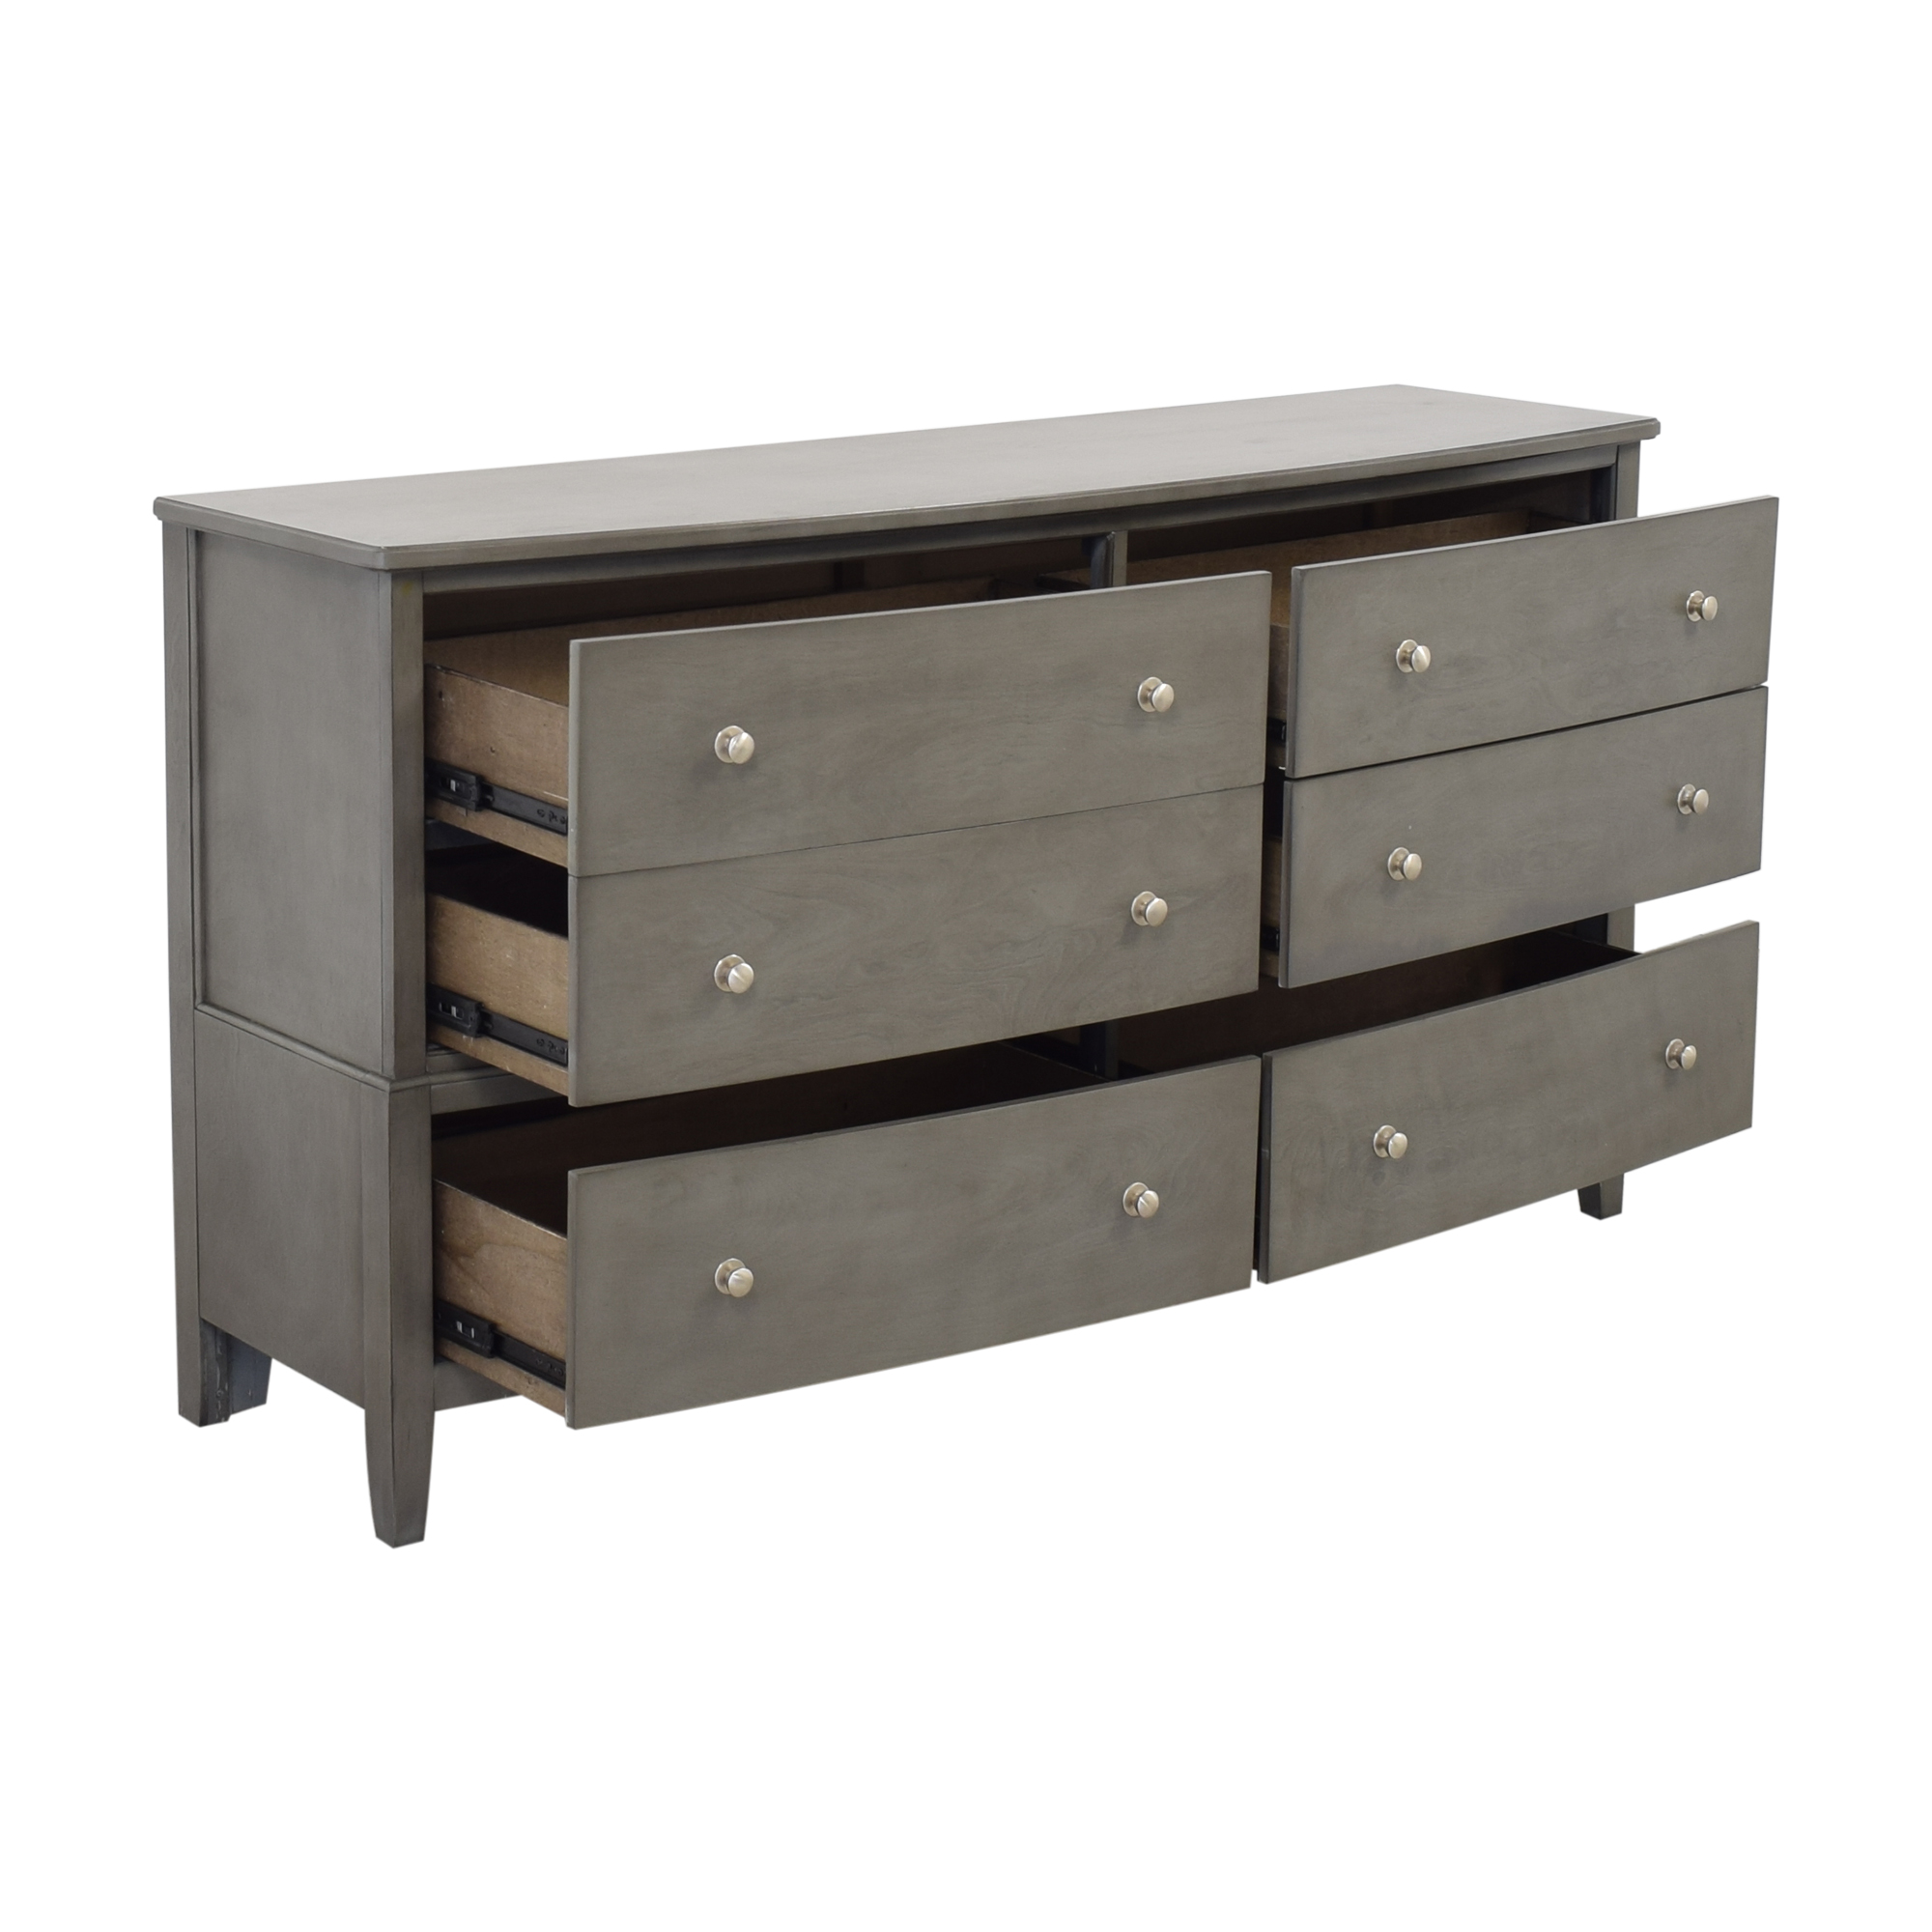 Raymour & Flanigan Raymour & Flanagan Six Drawer Dresser ma